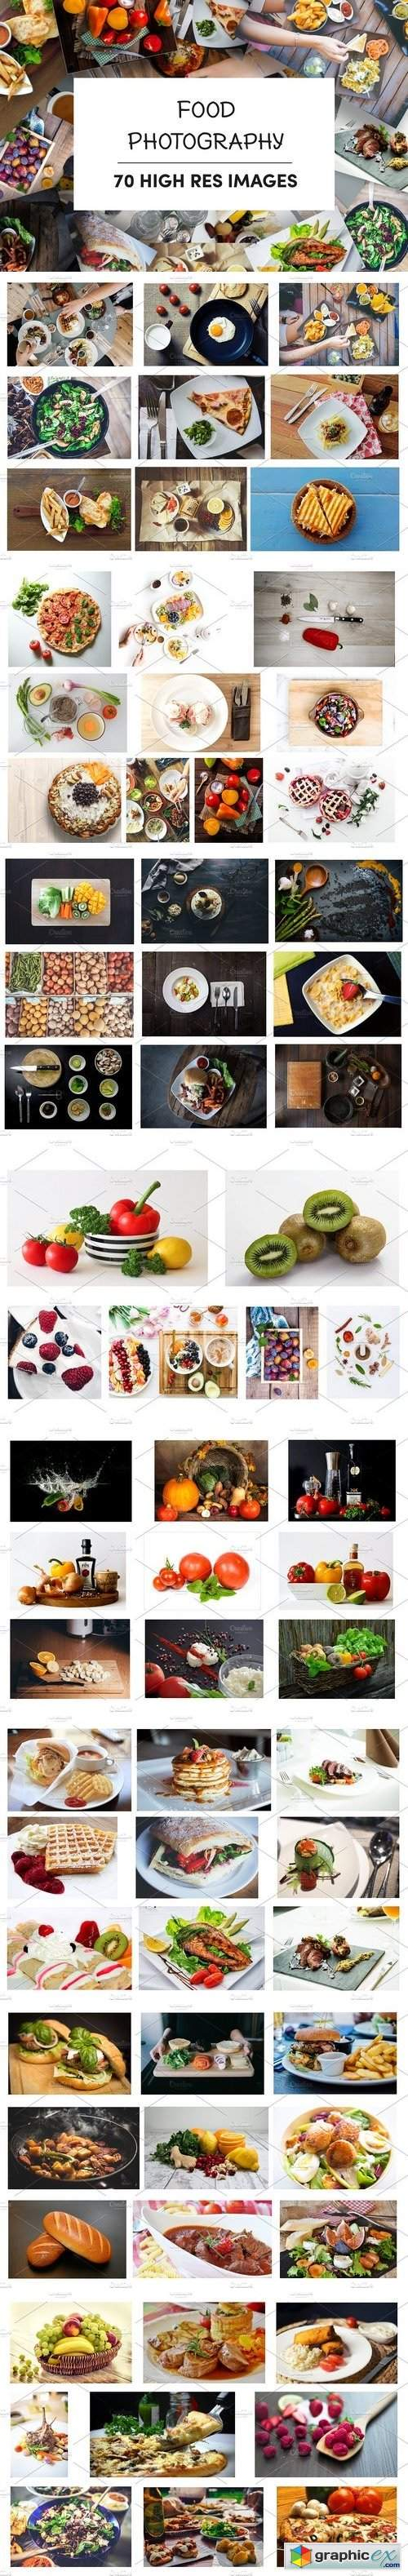 70 High Res Food Photography Images